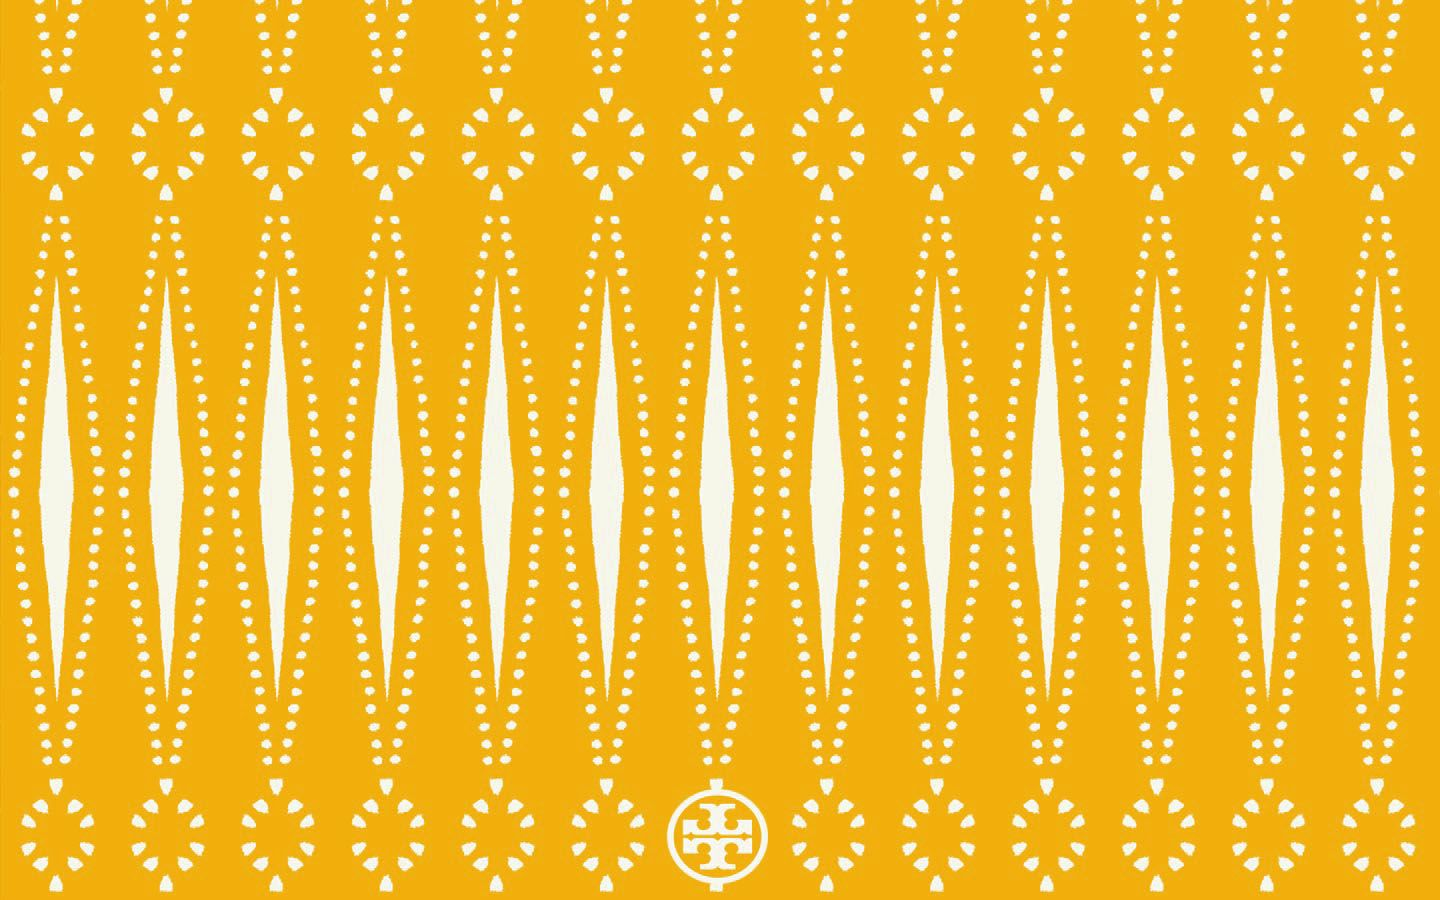 tory burch heart wallpaper - photo #28